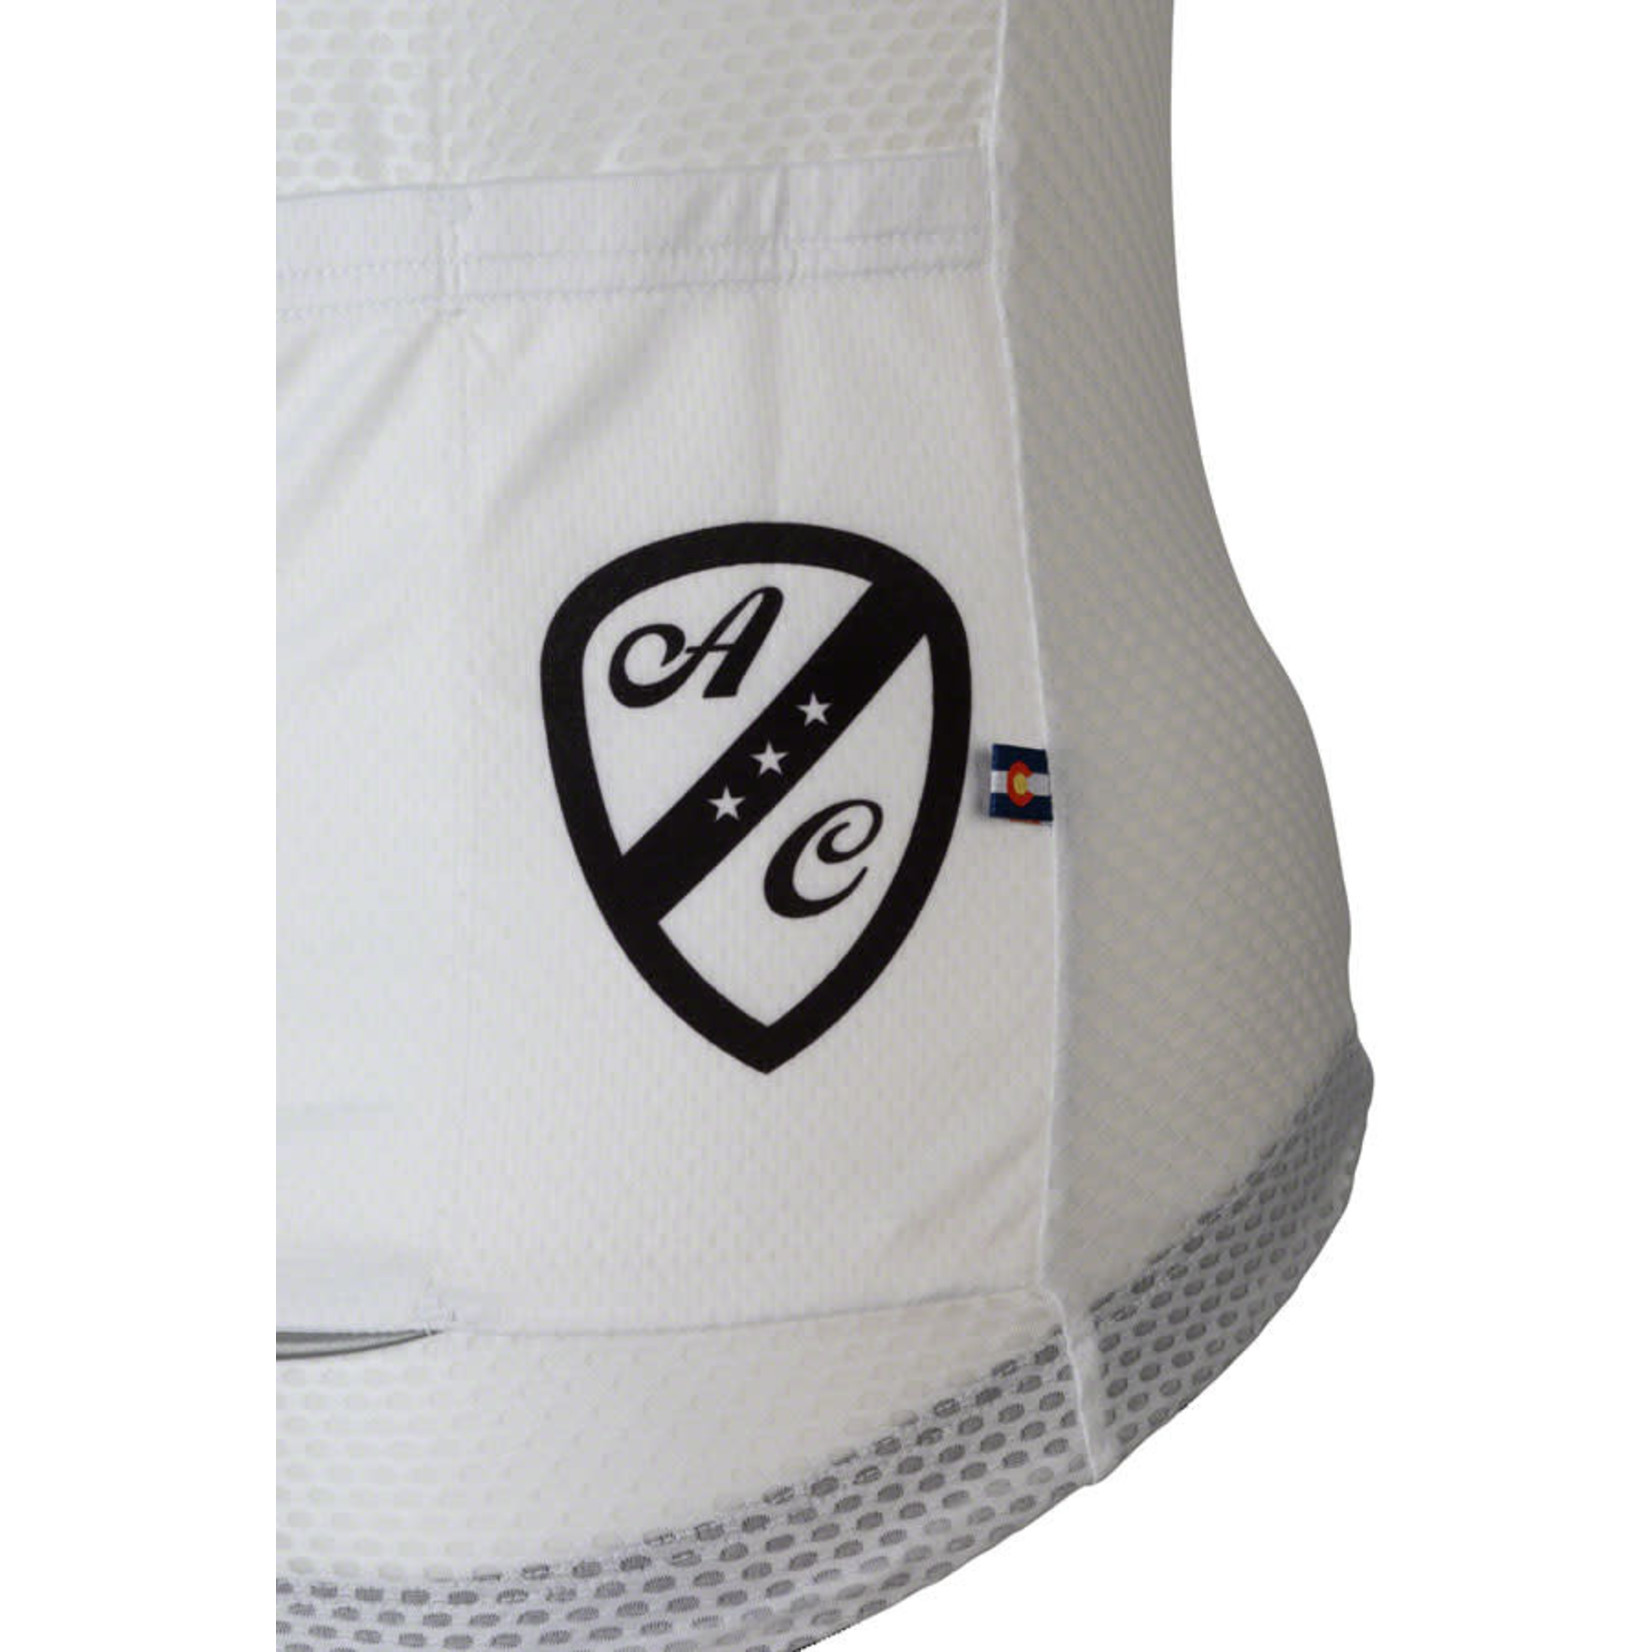 All-City Classic Jersey - White/Black, Short Sleeve, Women's, X-Large